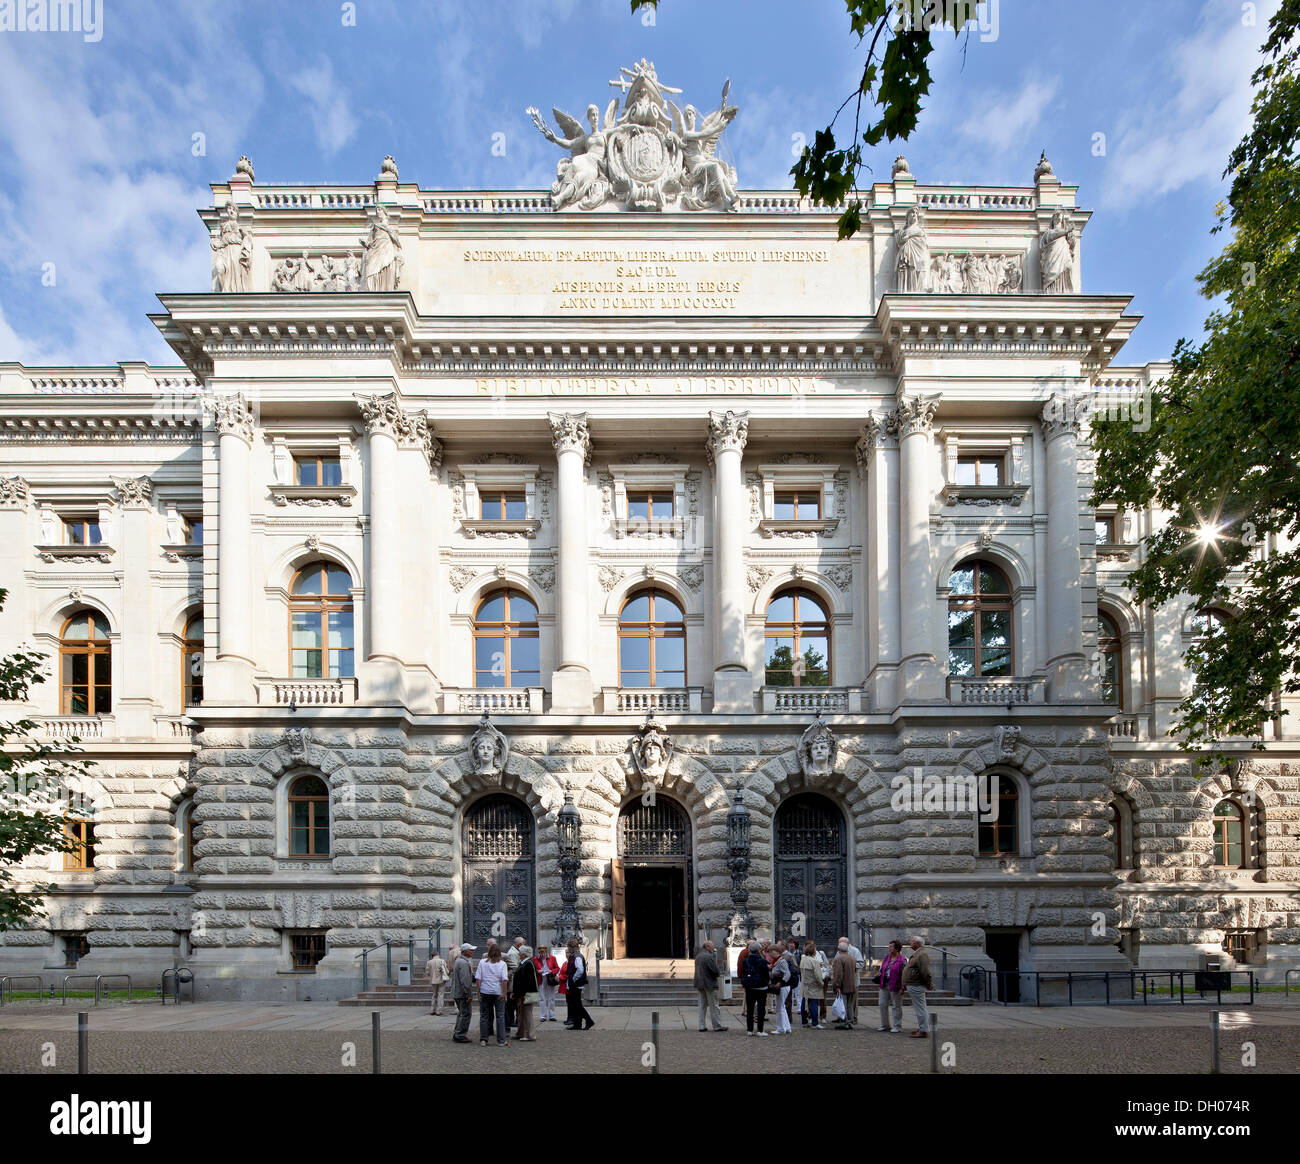 Die Albertina Stockfotos & Die Albertina Bilder - Alamy